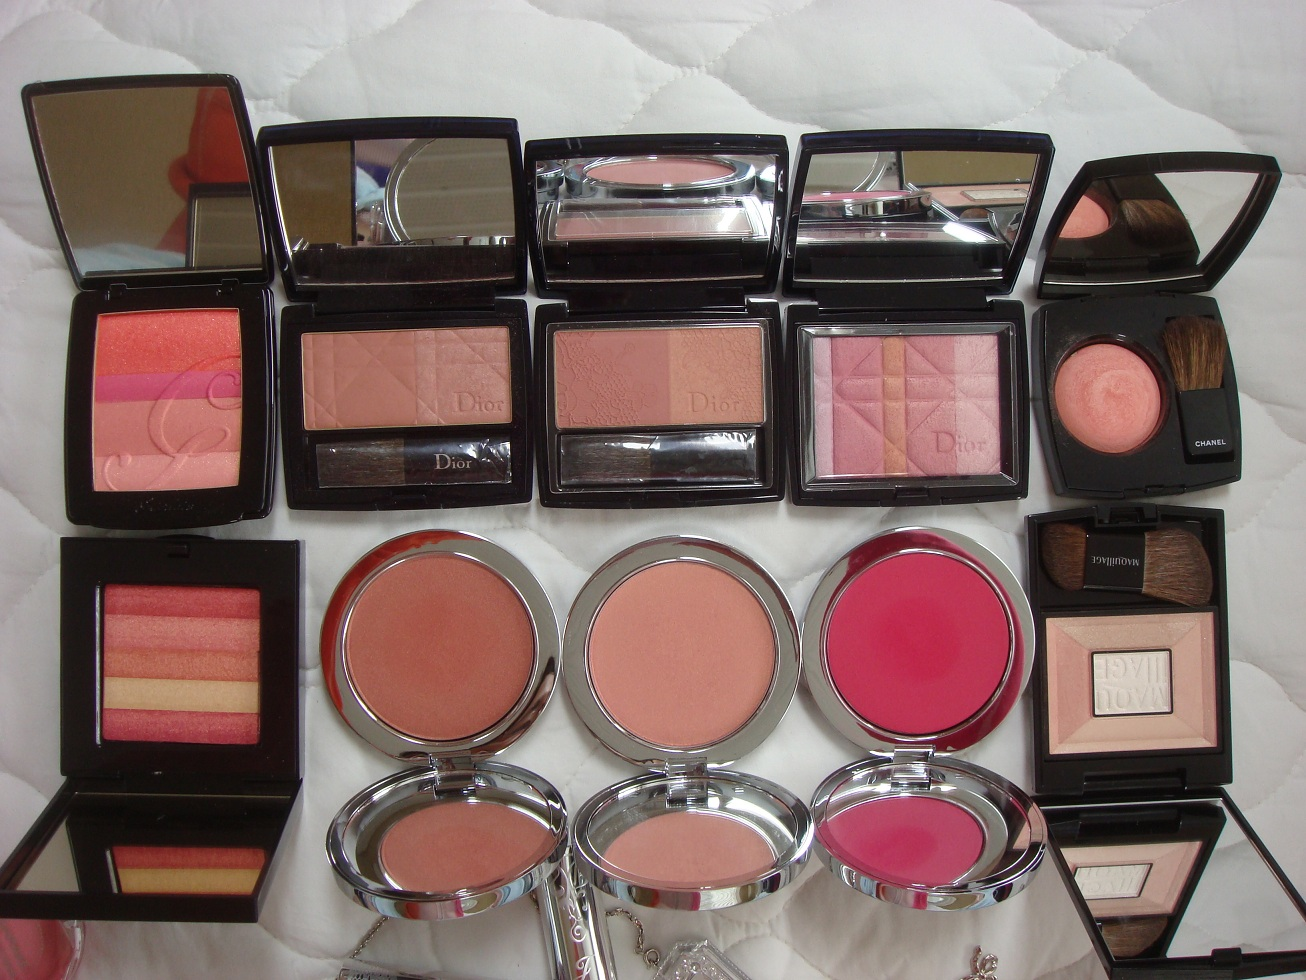 Blush Maddy Loves Jill Beauty Lip Matte 04 Rosy First Row Stuart Blossom In Sensual Dahlia Mix Compact Lovely Tulip Powder Puffy Marshmallow From